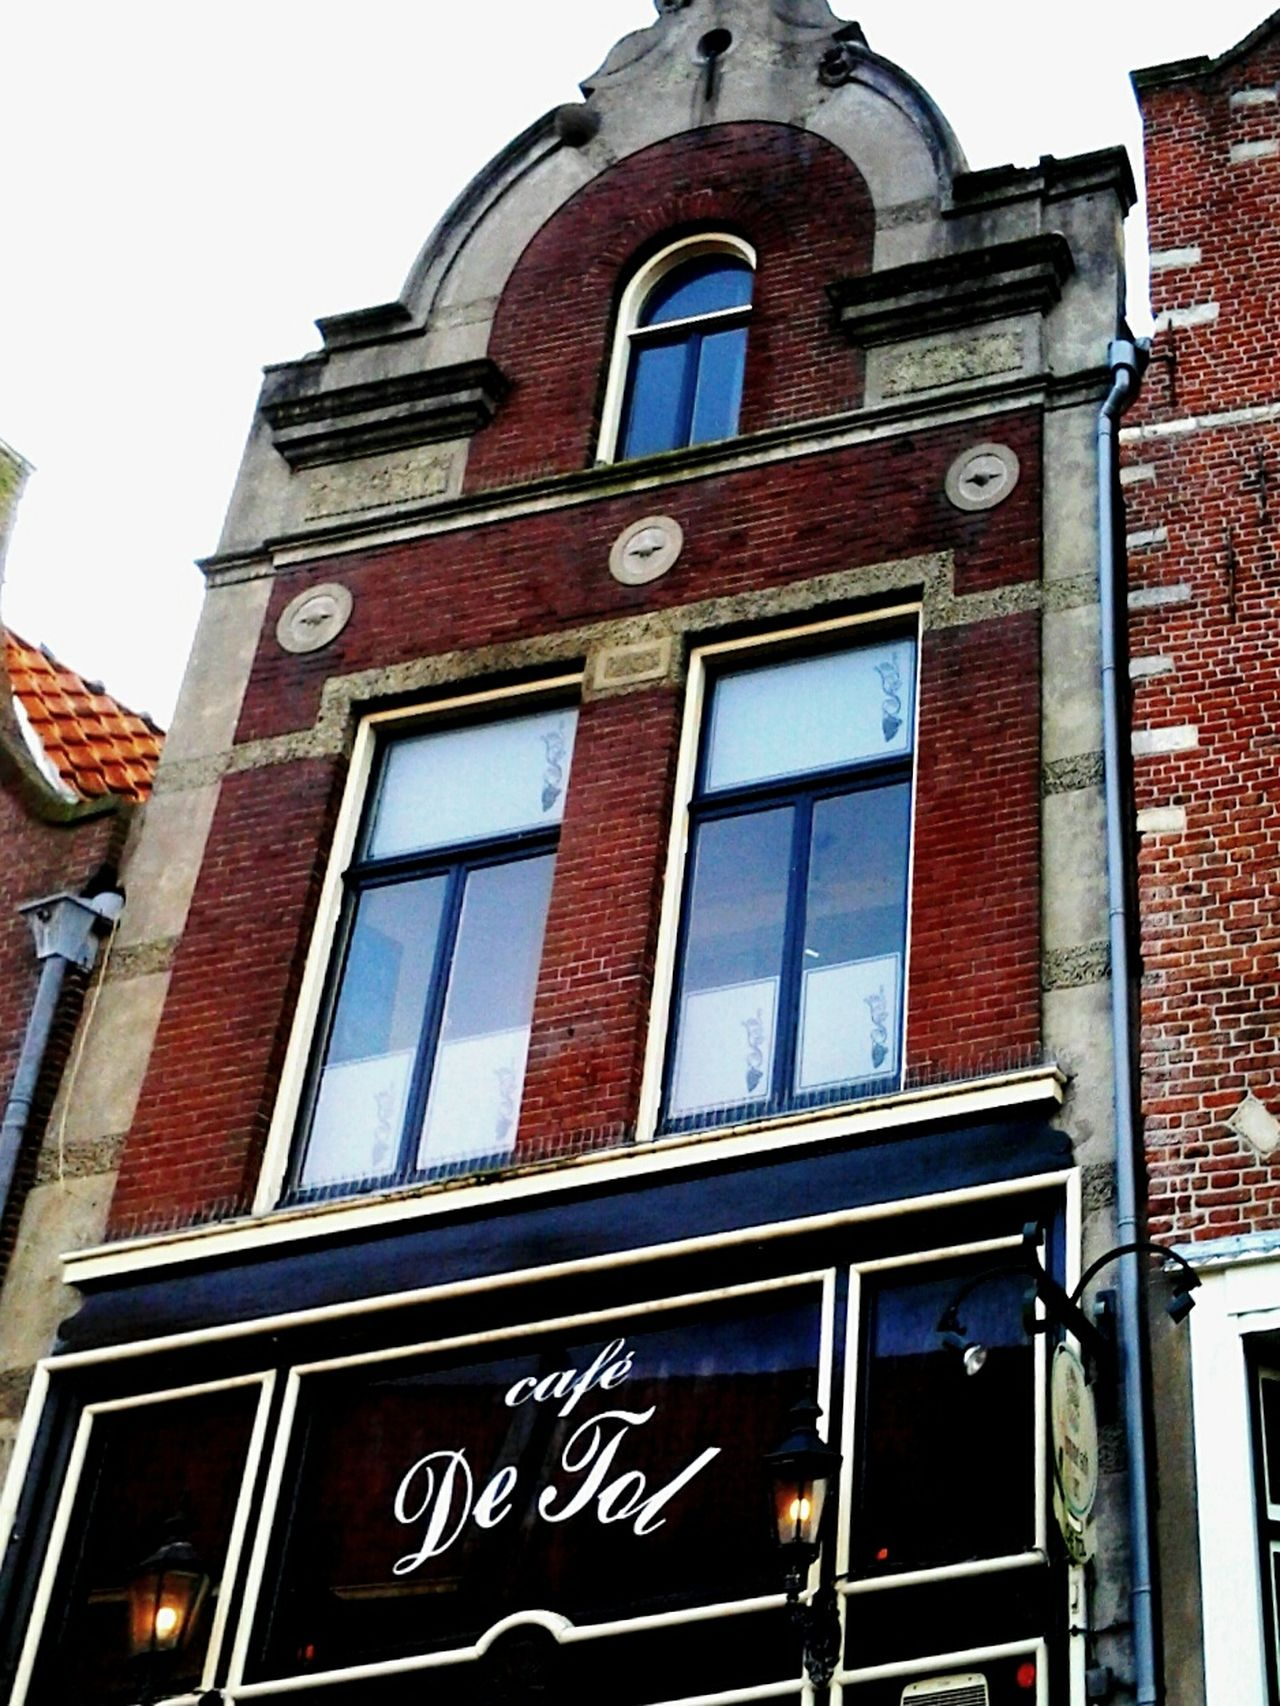 15 years old, living on my own.Top window 2 by 3 meter. Above a noisy bar.Spend more hours in 1st level, the bar Architecture_collection Dutch Architecture Historical Houses Showcase: November Seeing The Sights Dutch Nostalgia